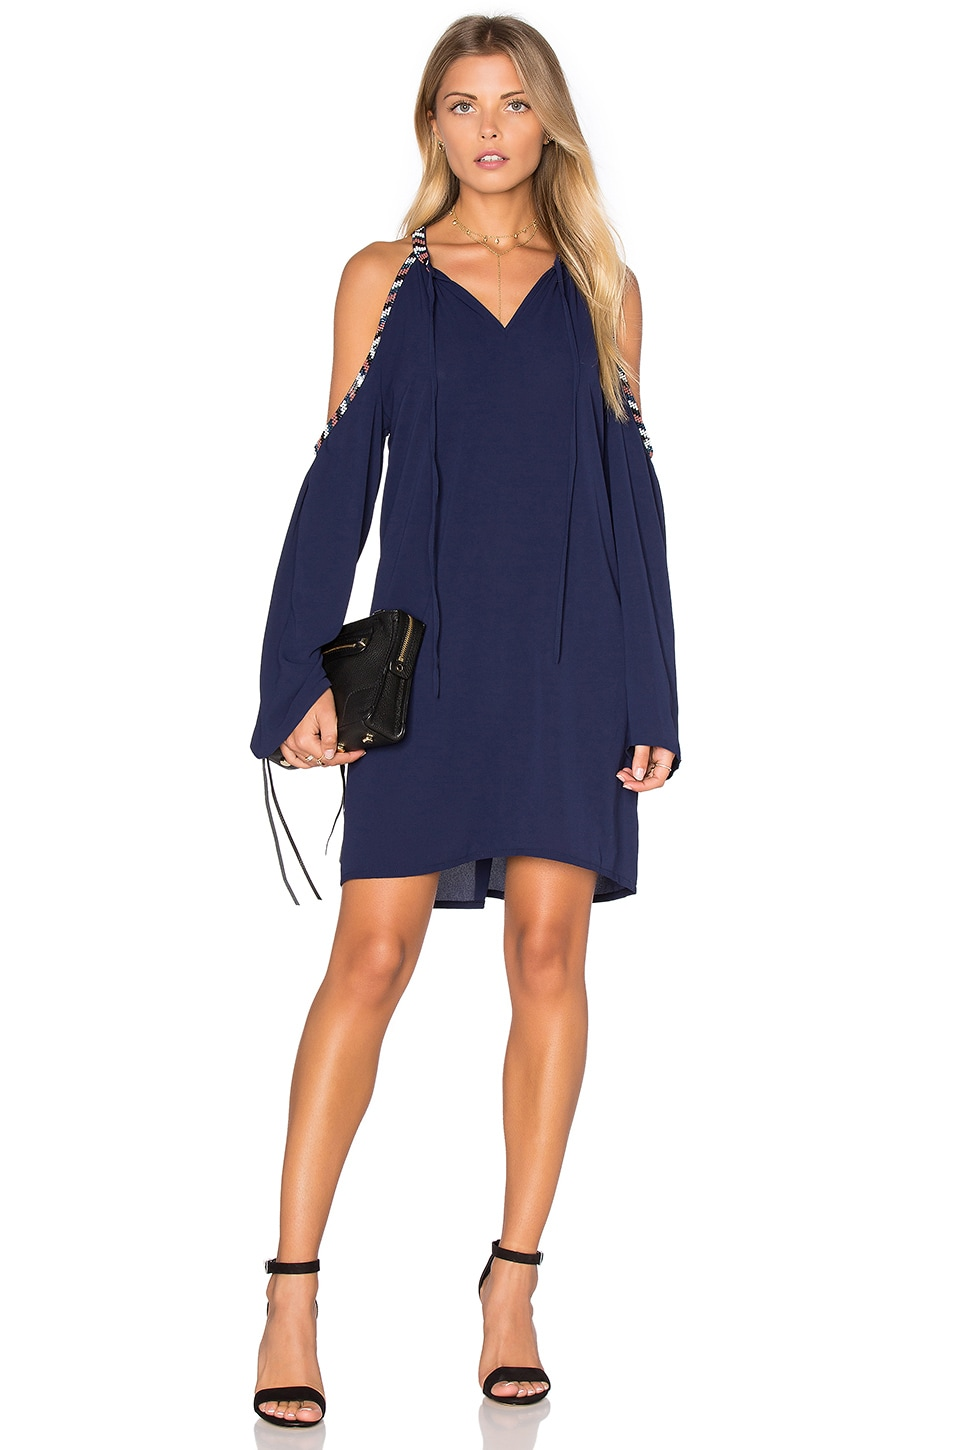 Deby Debo Berlin Embellished Dress in Navy